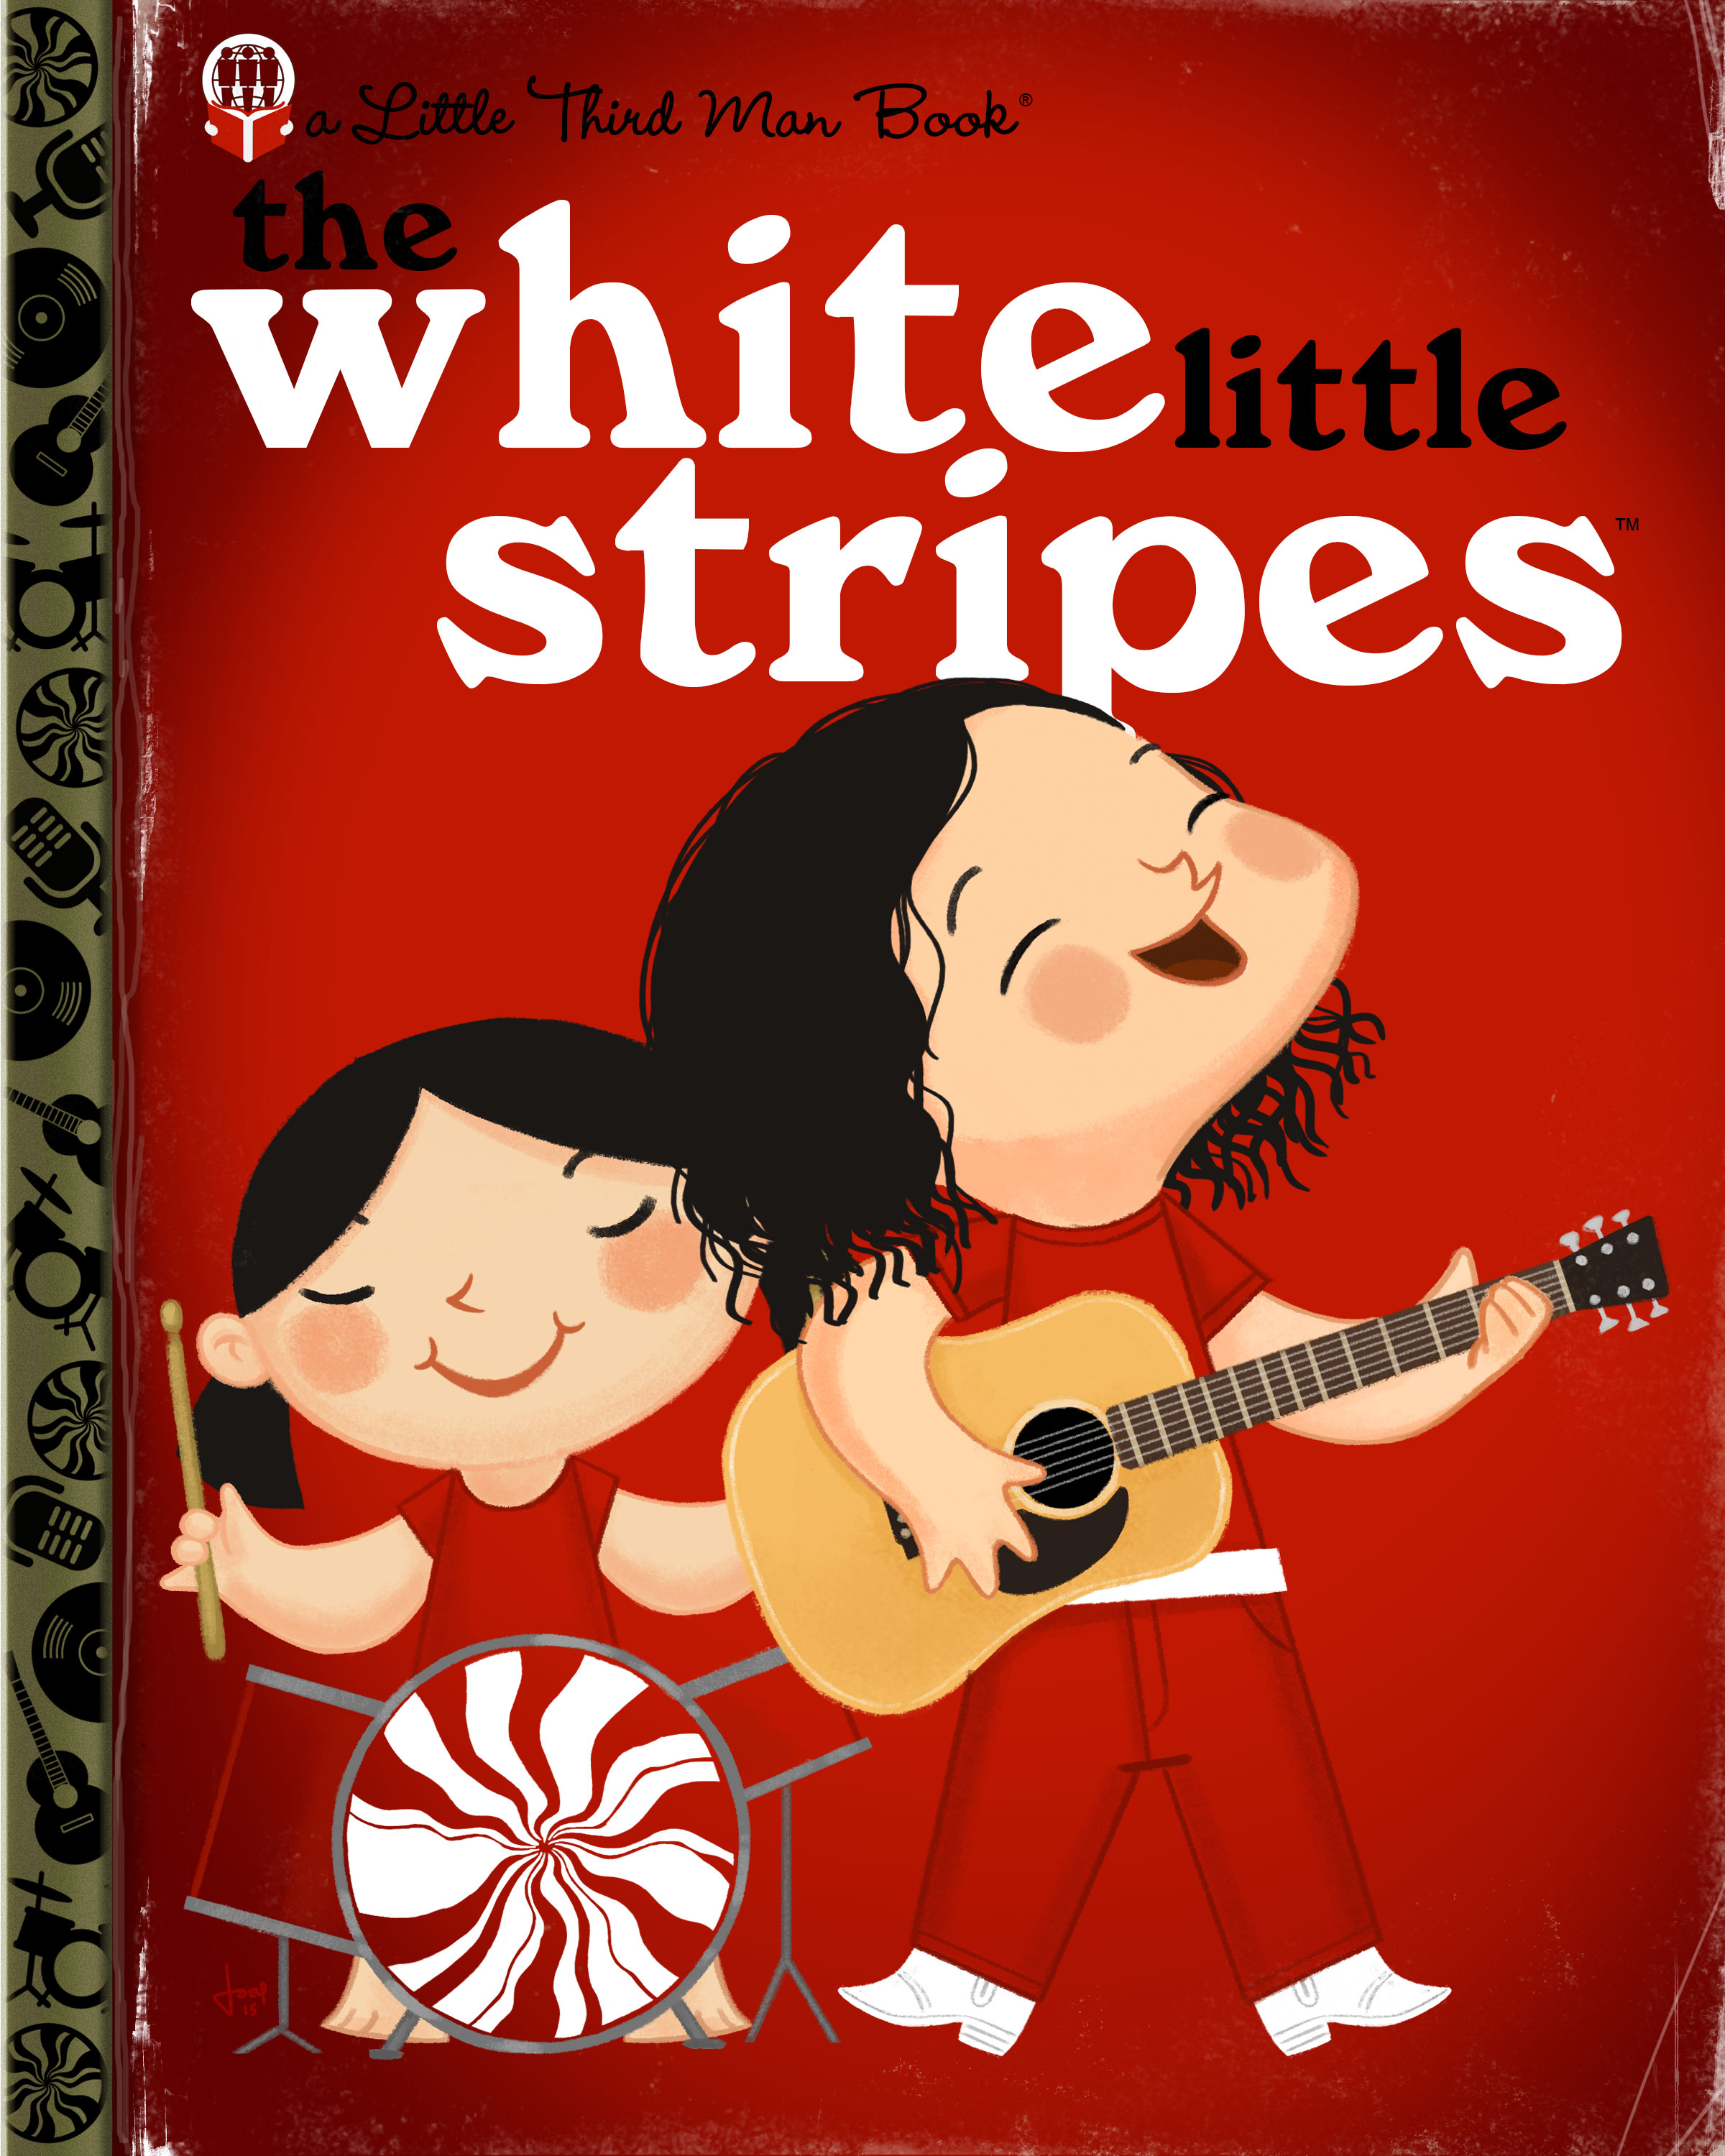 The-White-Stripes-25.jpg